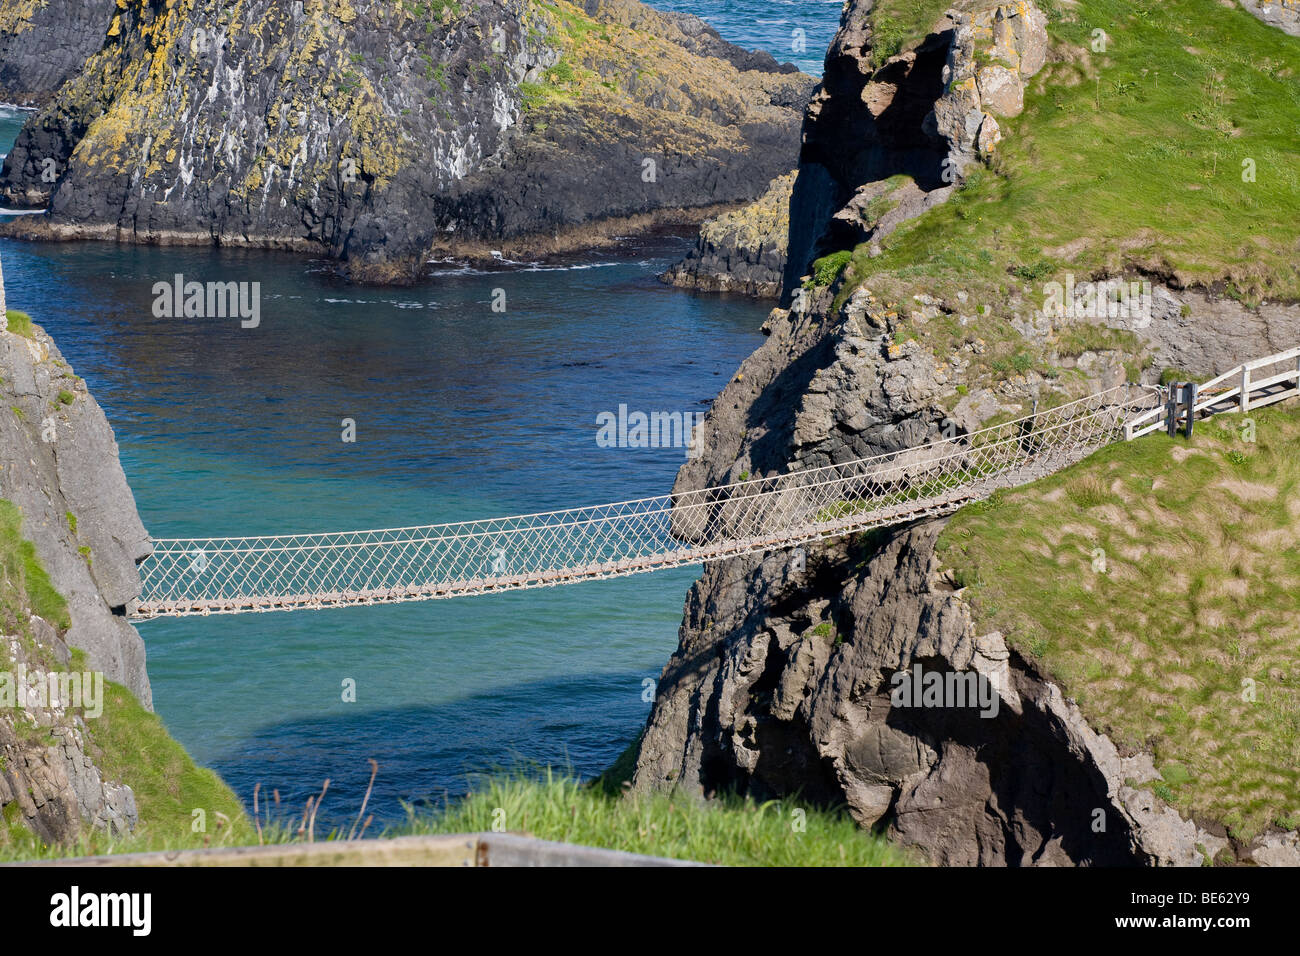 Empty Rope Bridge. A rare moment when no one is crossing the the famous rope bridge over the bright blue and green - Stock Image